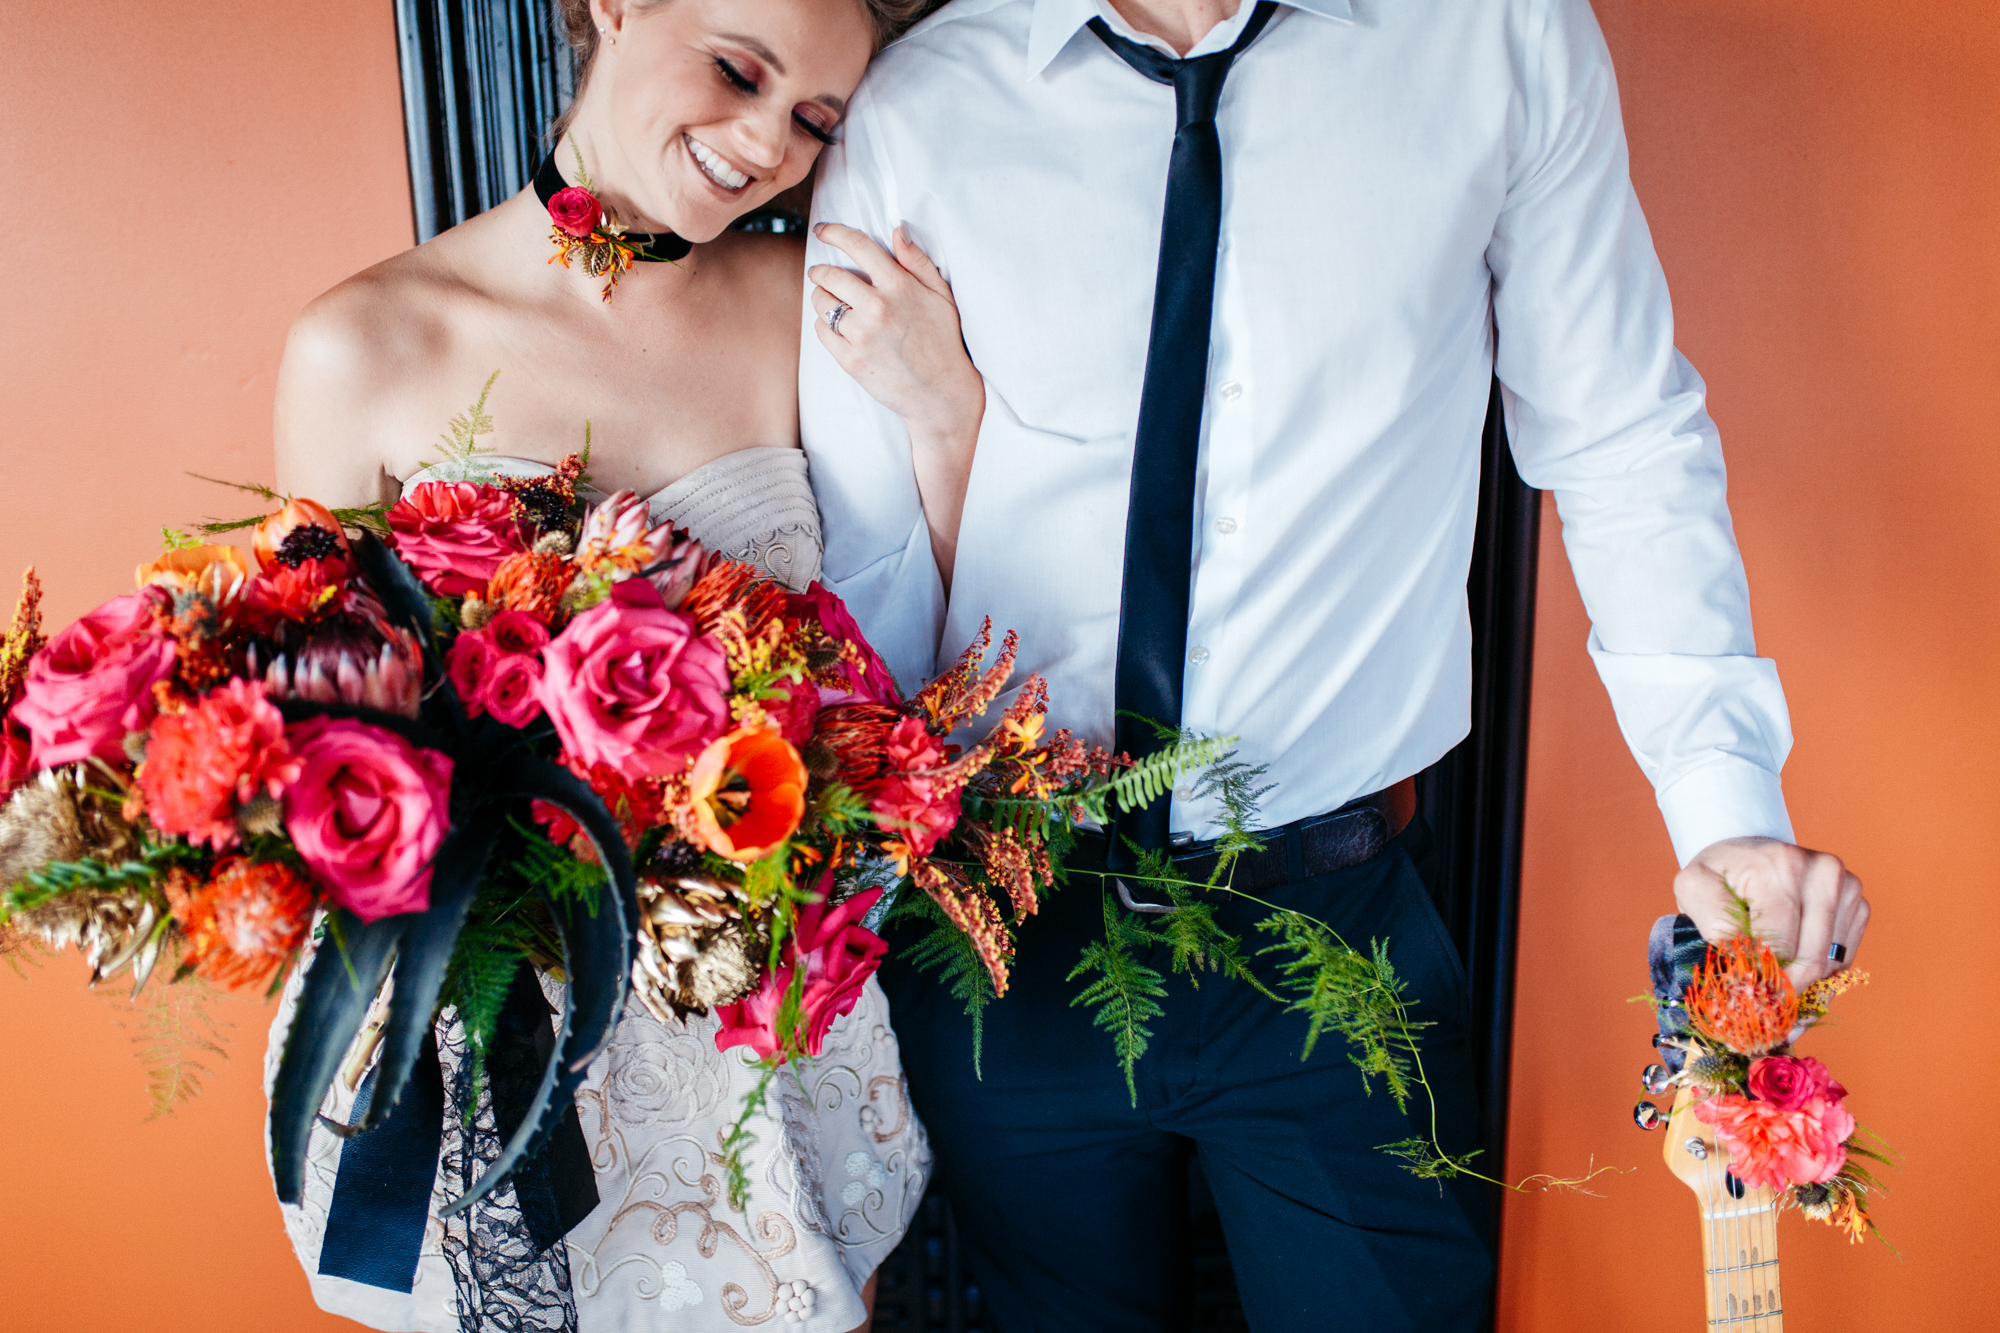 This punk rock wedding inspiration had pink floyd roses, electric guitars and some really talented venders.